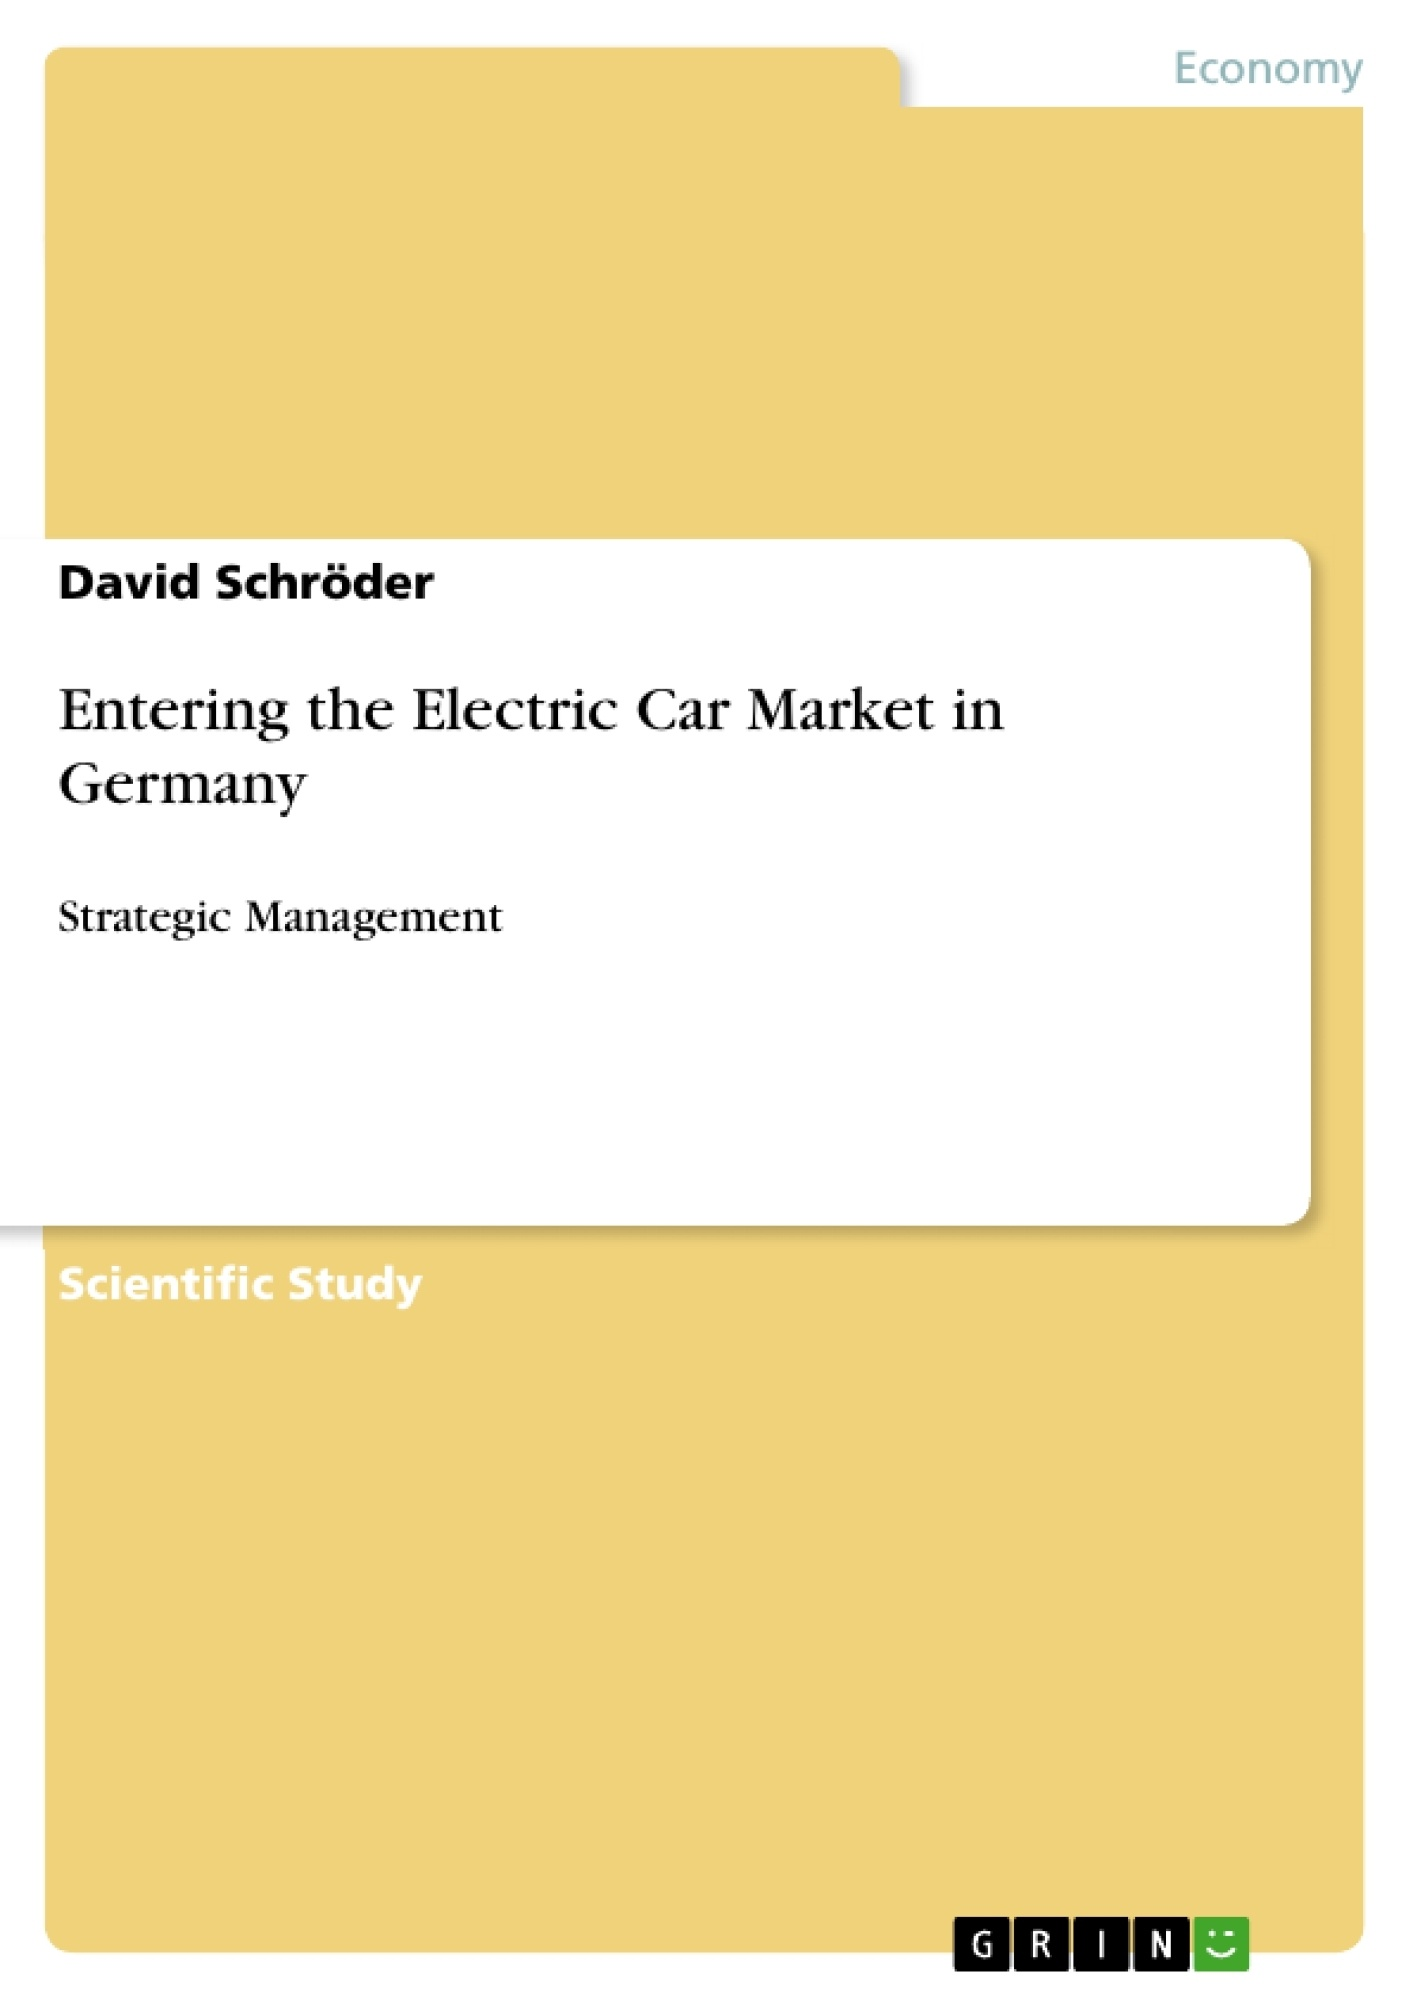 Title: Entering the Electric Car Market in Germany